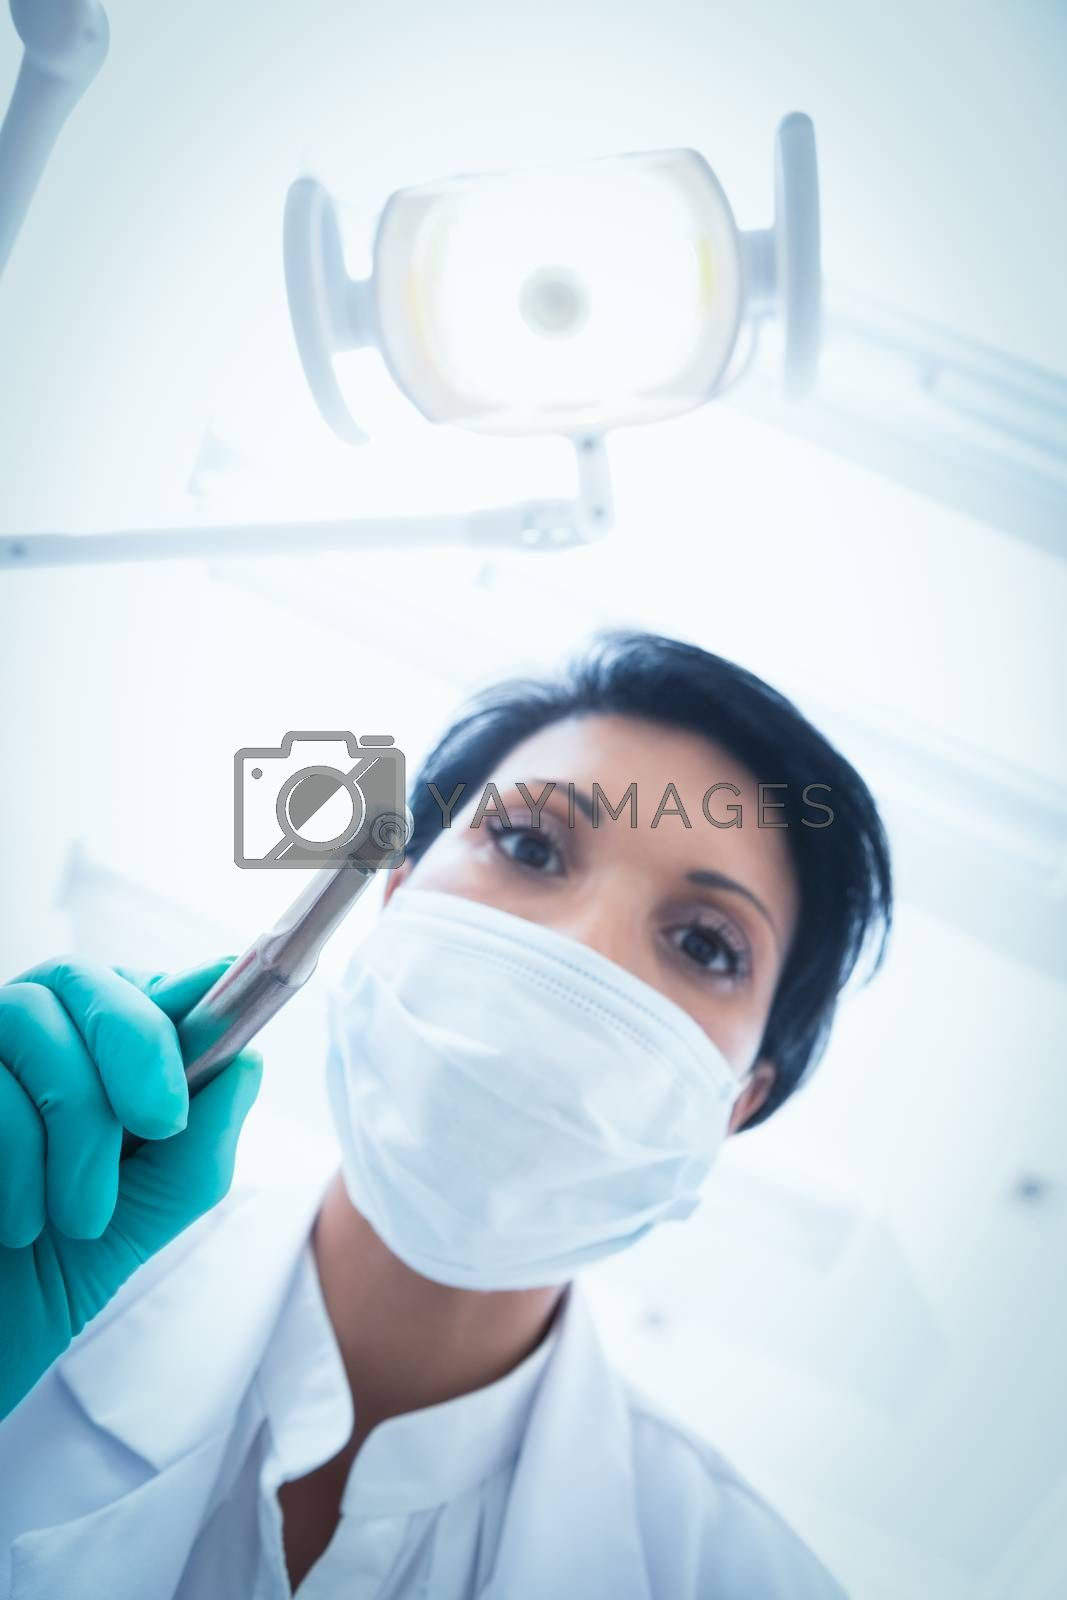 Low angle view of female dentist in surgical mask holding dental drill